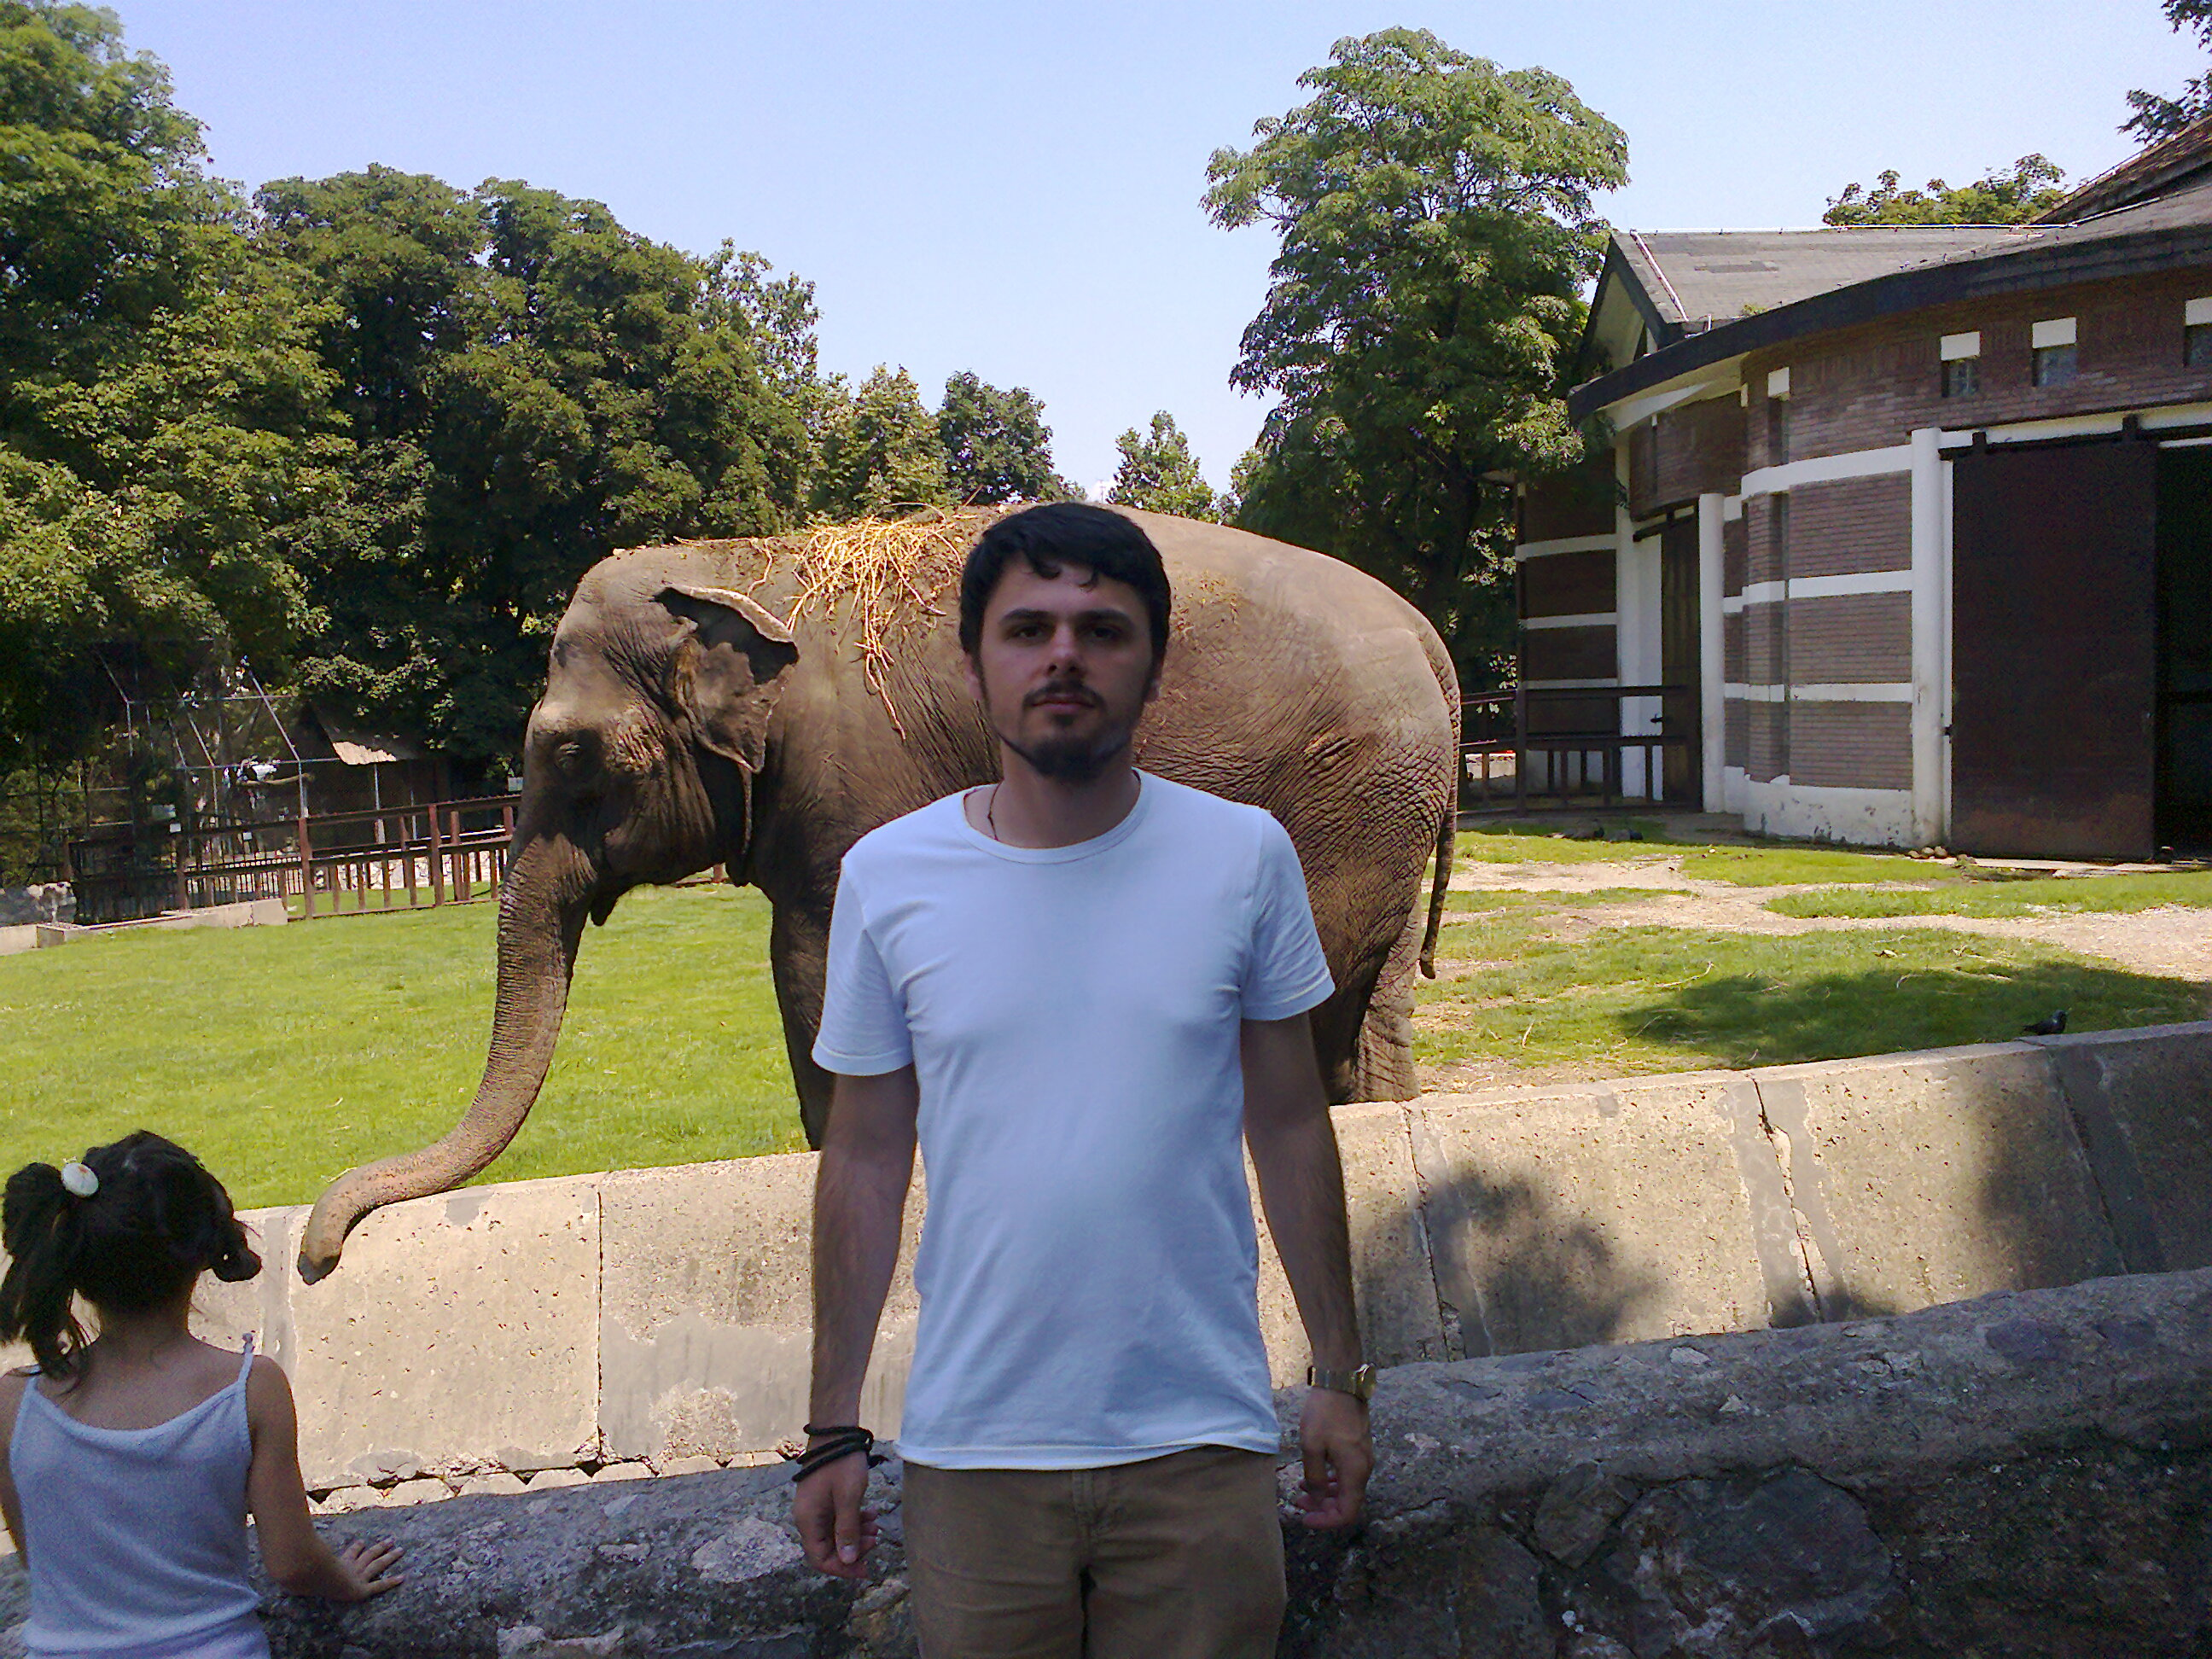 hip0-and-a-Lion-in-Beograd-Zoo